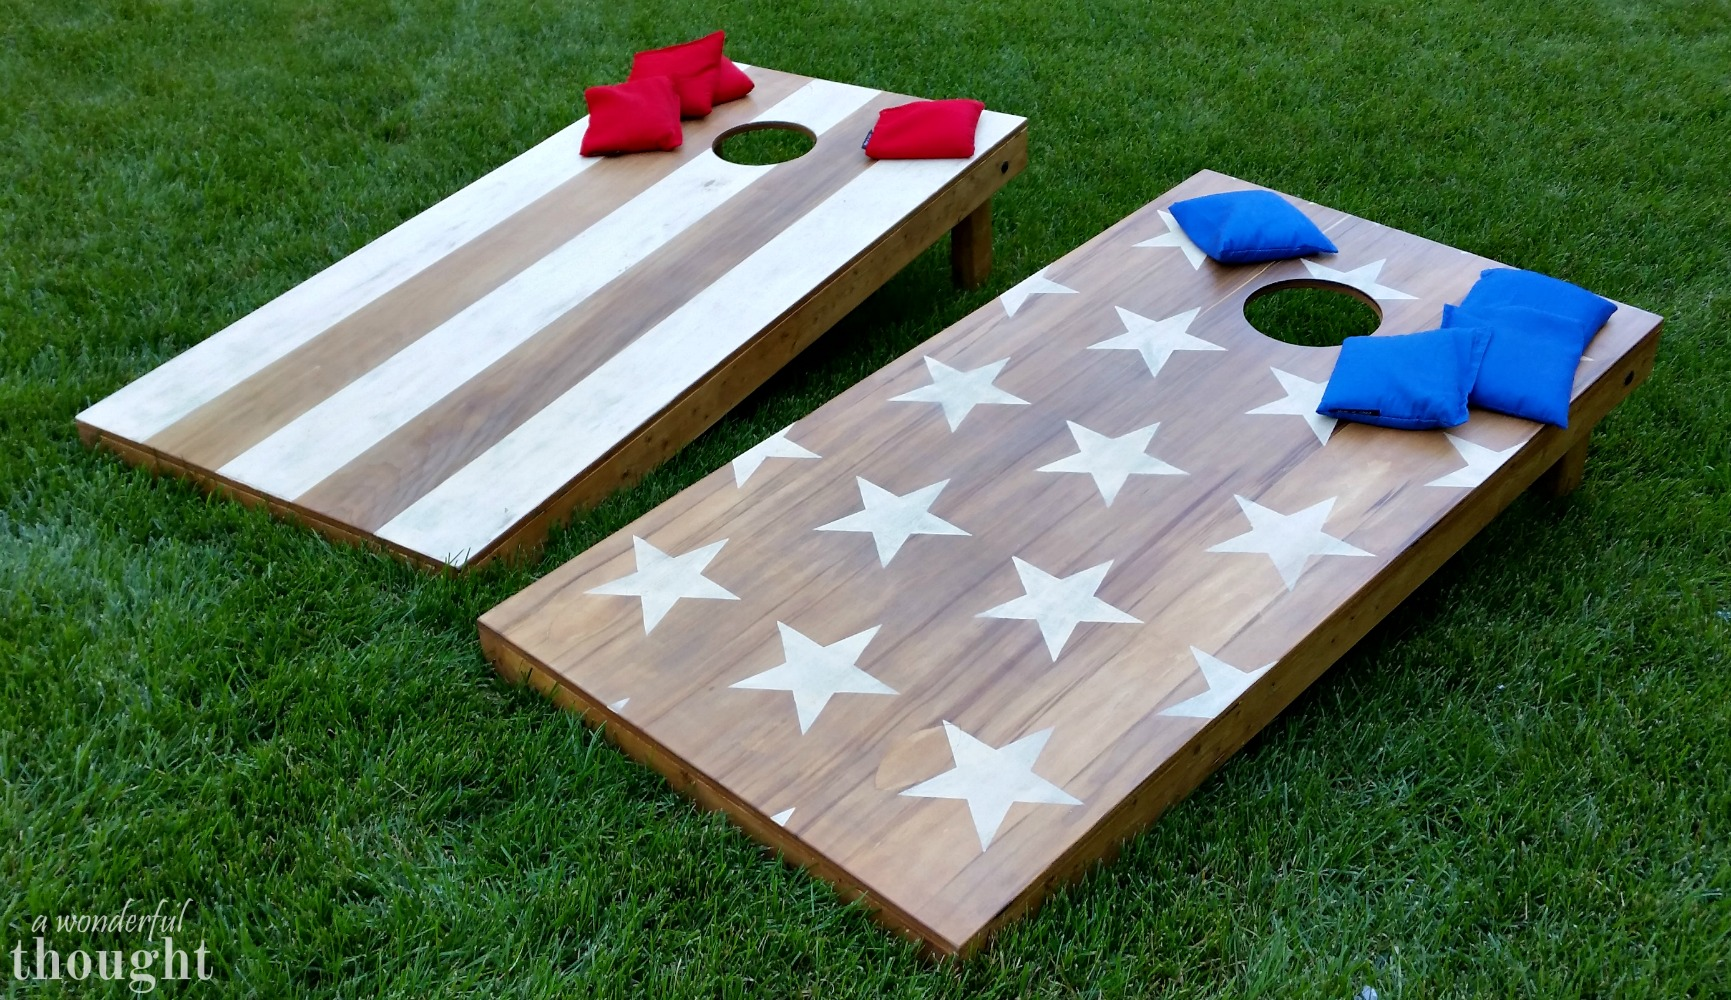 photograph regarding Printable Cornhole Rules referred to as Do-it-yourself Cornhole Message boards - A Excellent Idea